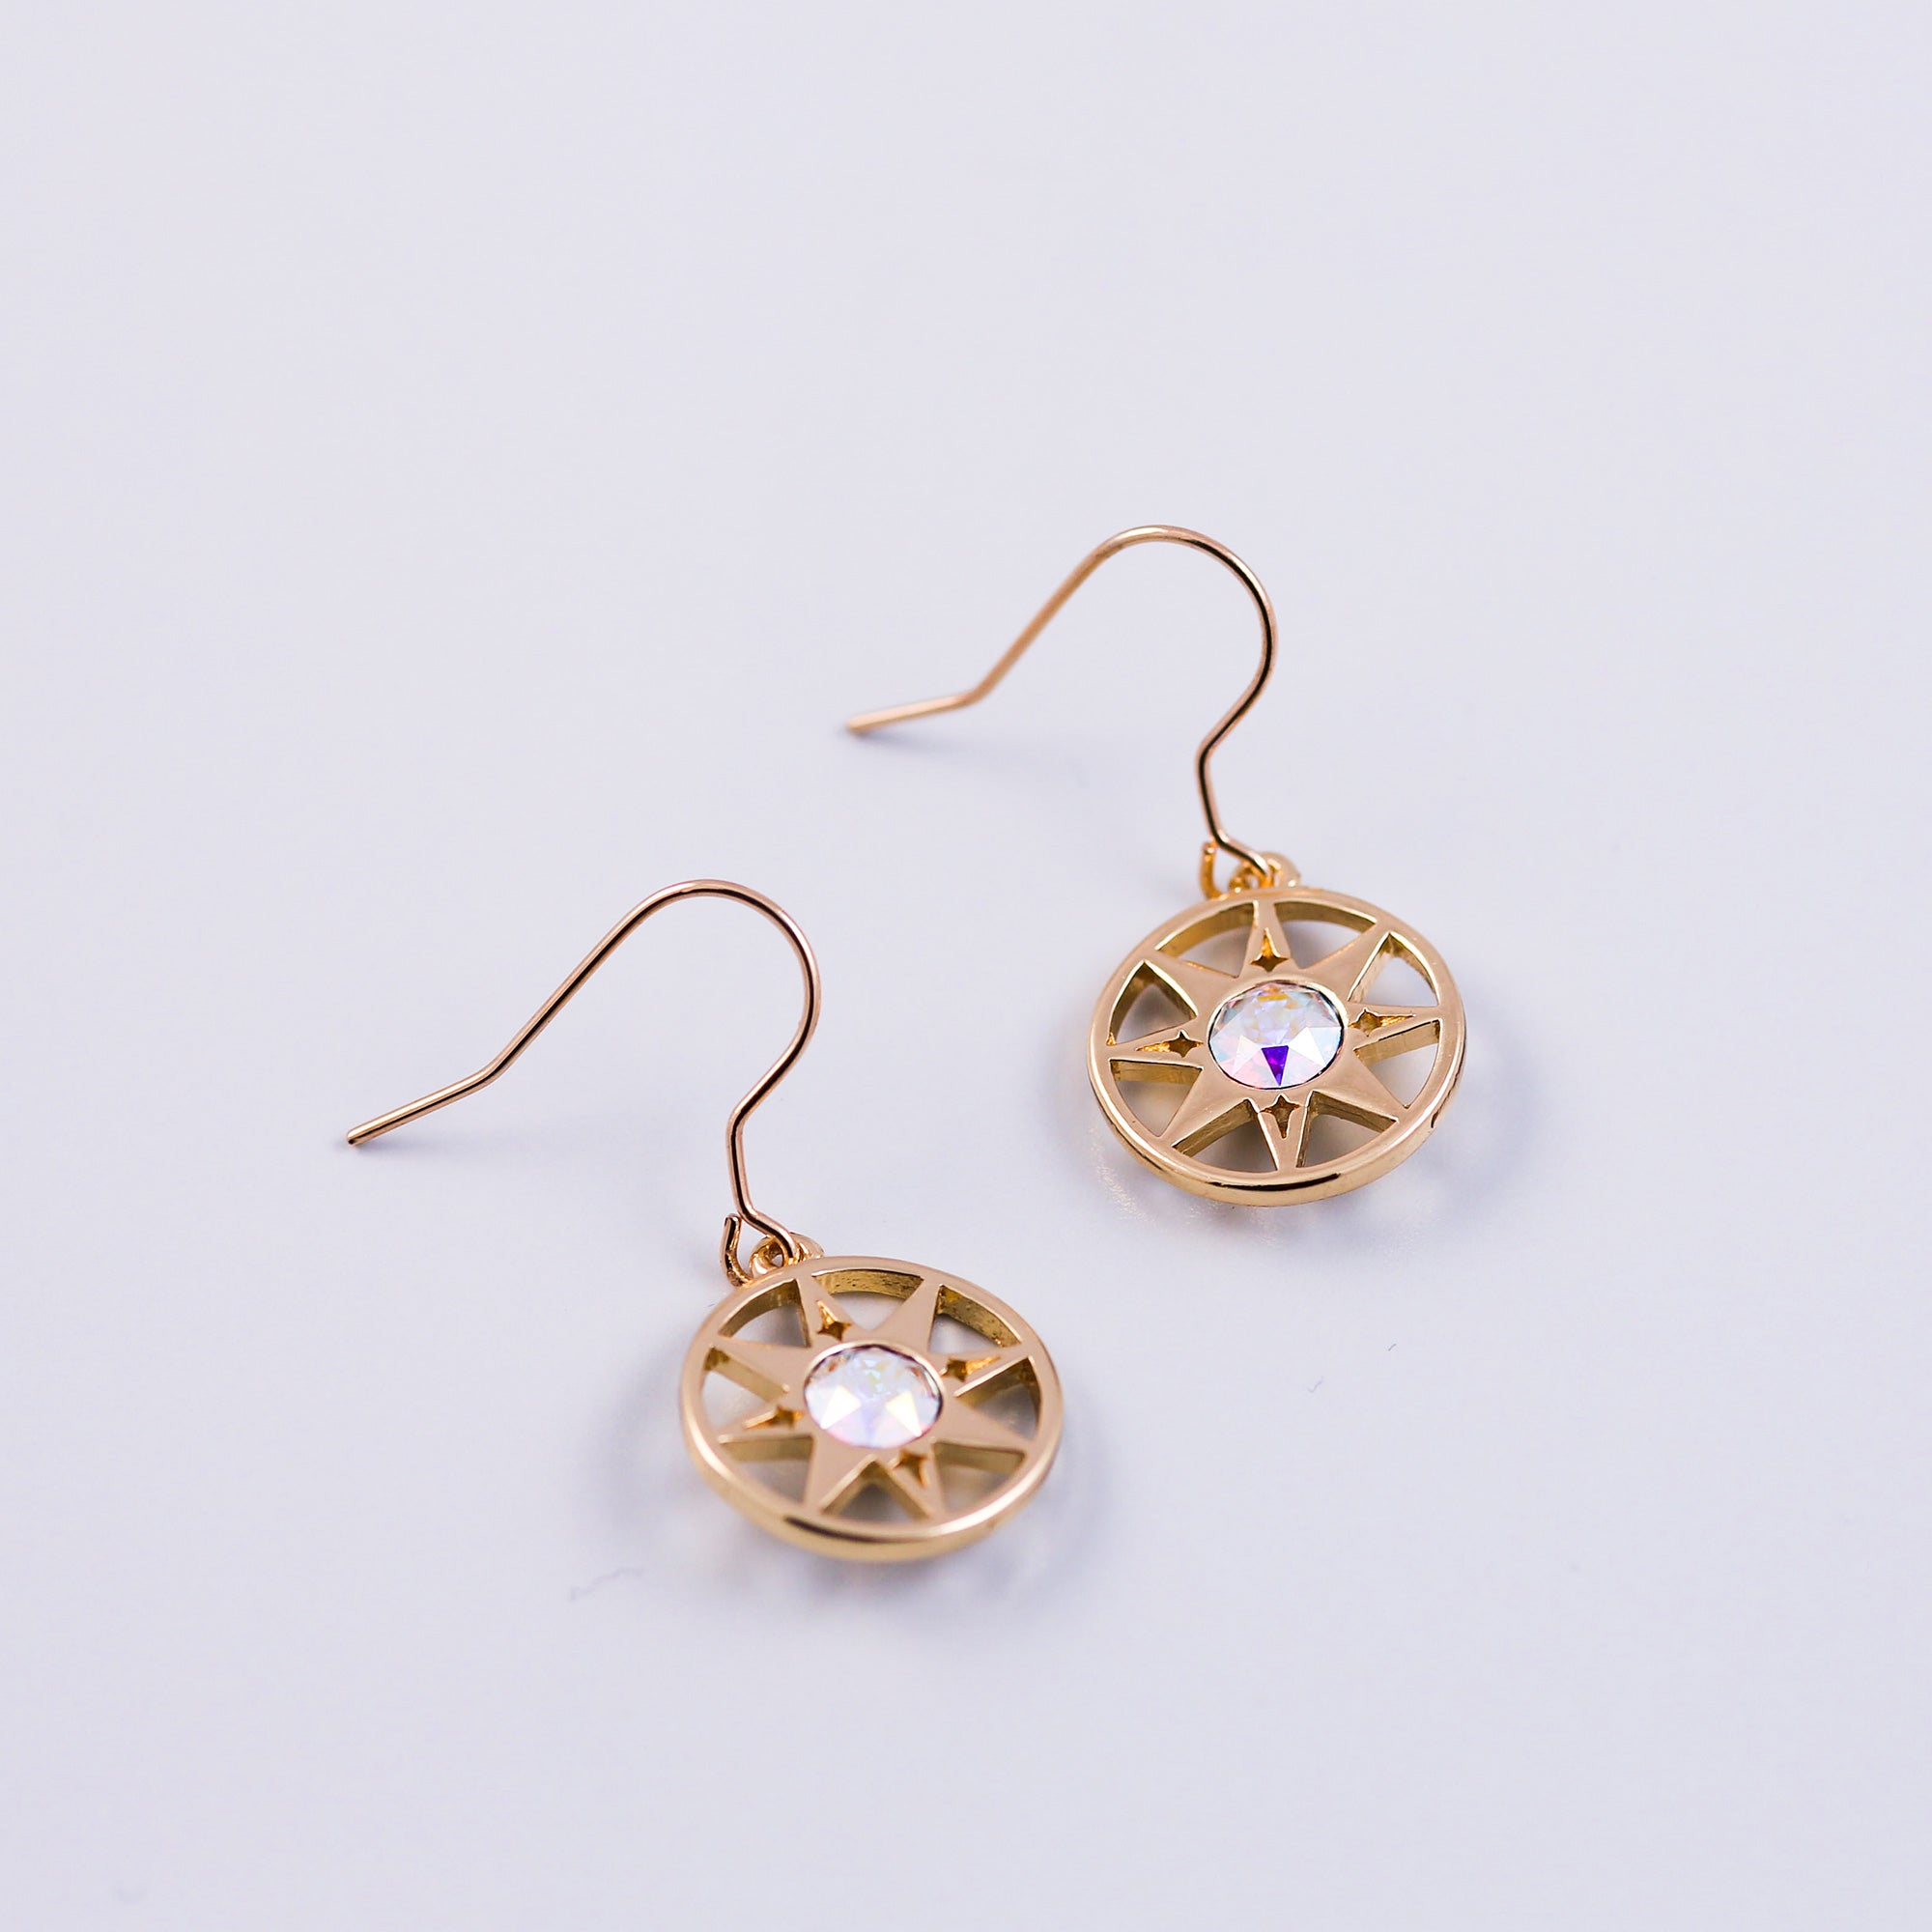 Gold & Crystal AB Compass North Star Earrings